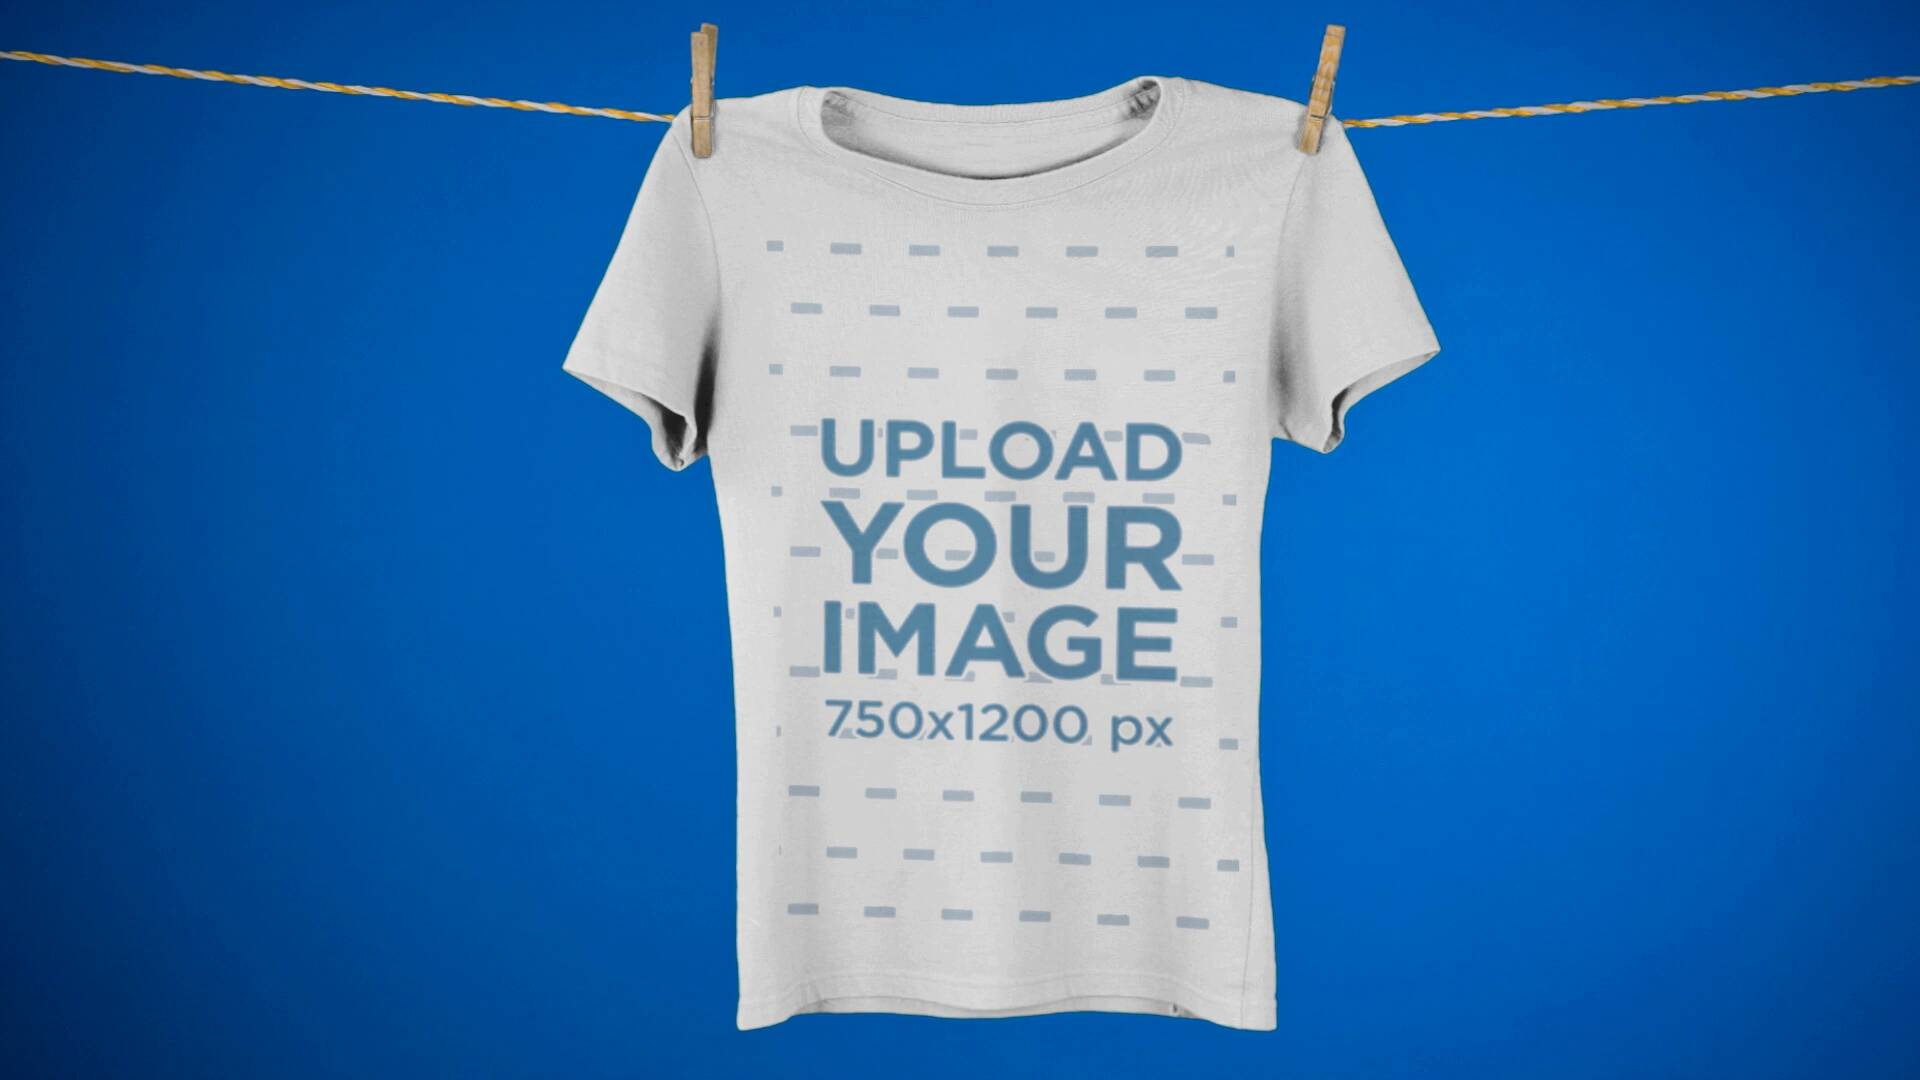 generator create realistic mockups in seconds (now 15% off) 21,300+ mockups. 25 Best T Shirt Mockup Videos Free Downloads Using A Mockup Generator